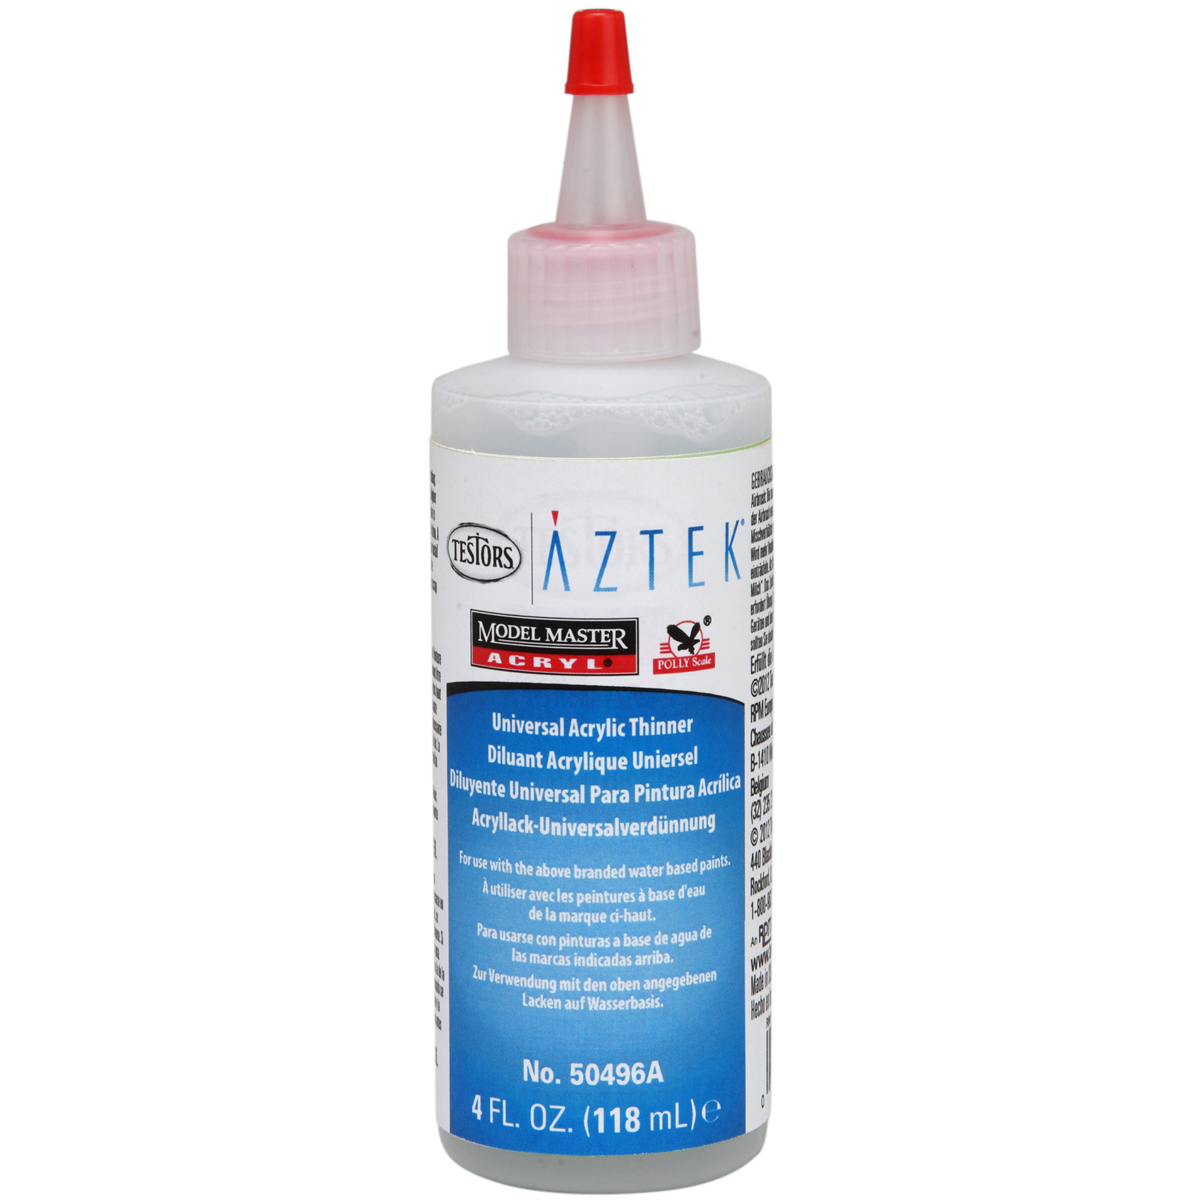 Aztek Airbrush Acrylic Thinner